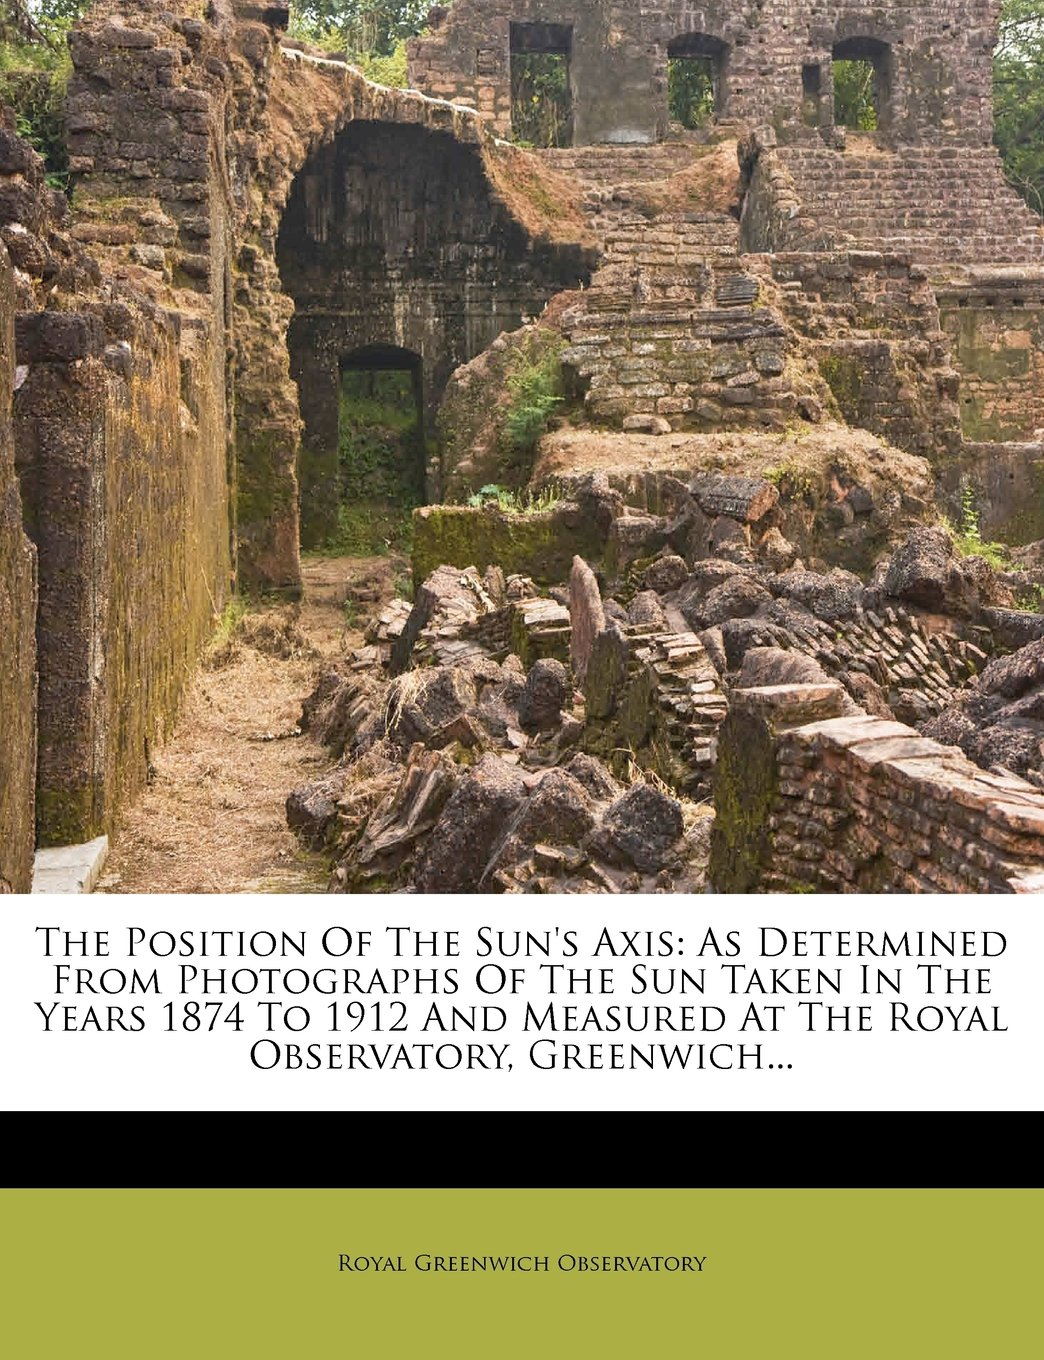 Download The Position Of The Sun's Axis: As Determined From Photographs Of The Sun Taken In The Years 1874 To 1912 And Measured At The Royal Observatory, Greenwich... pdf epub